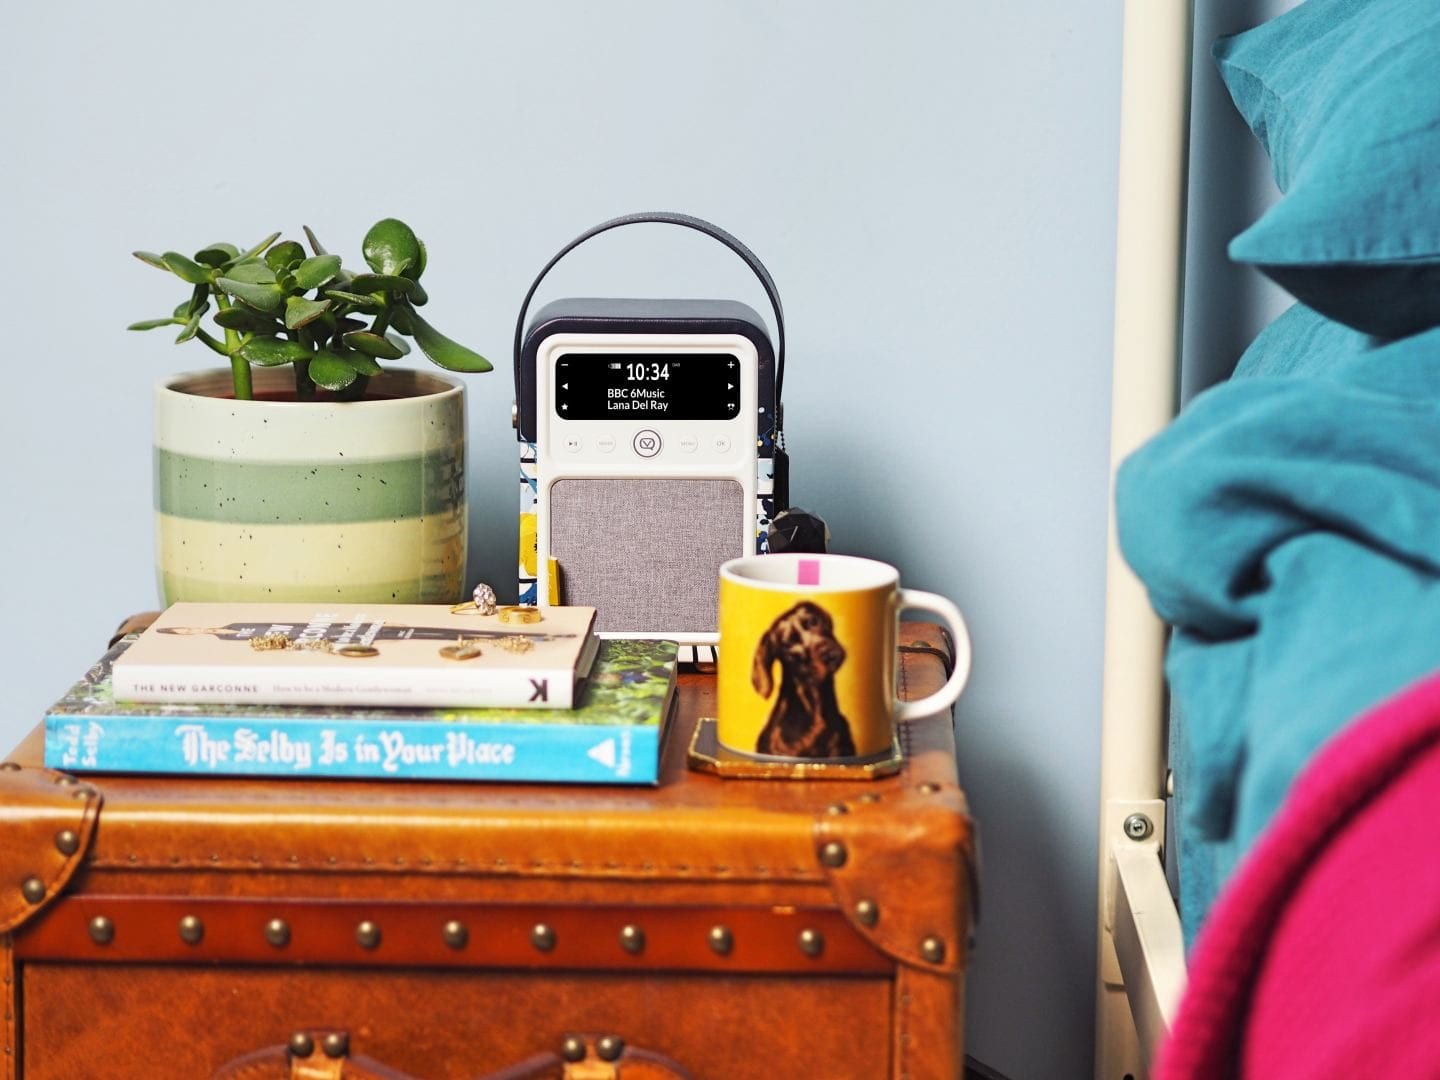 VQ X Joules clothing design radio bedside table_